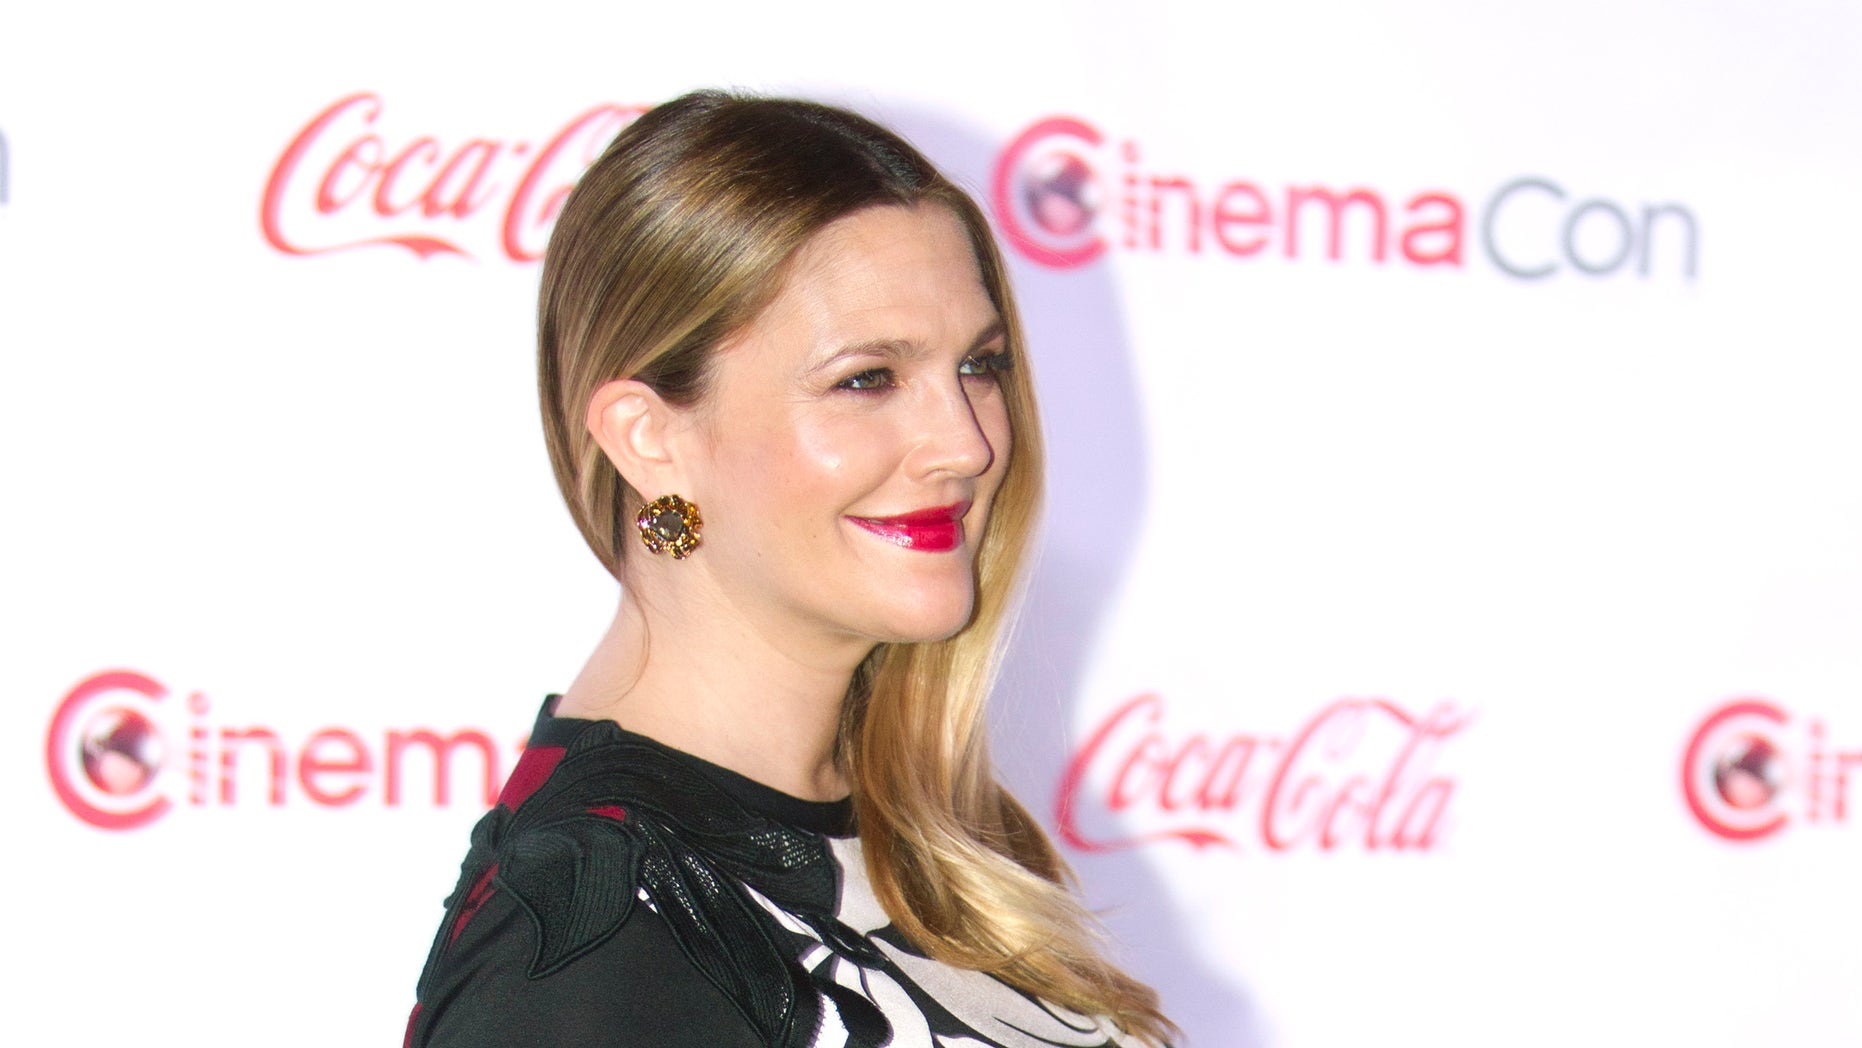 March 27, 2014. A pregnant Drew Barrymore poses as she arrives for the Big Screen Achievement Awards during CinemaCon, the official convention of the National Association of Theatre Owners, at Caesars Palace in Las Vegas, Nevada.